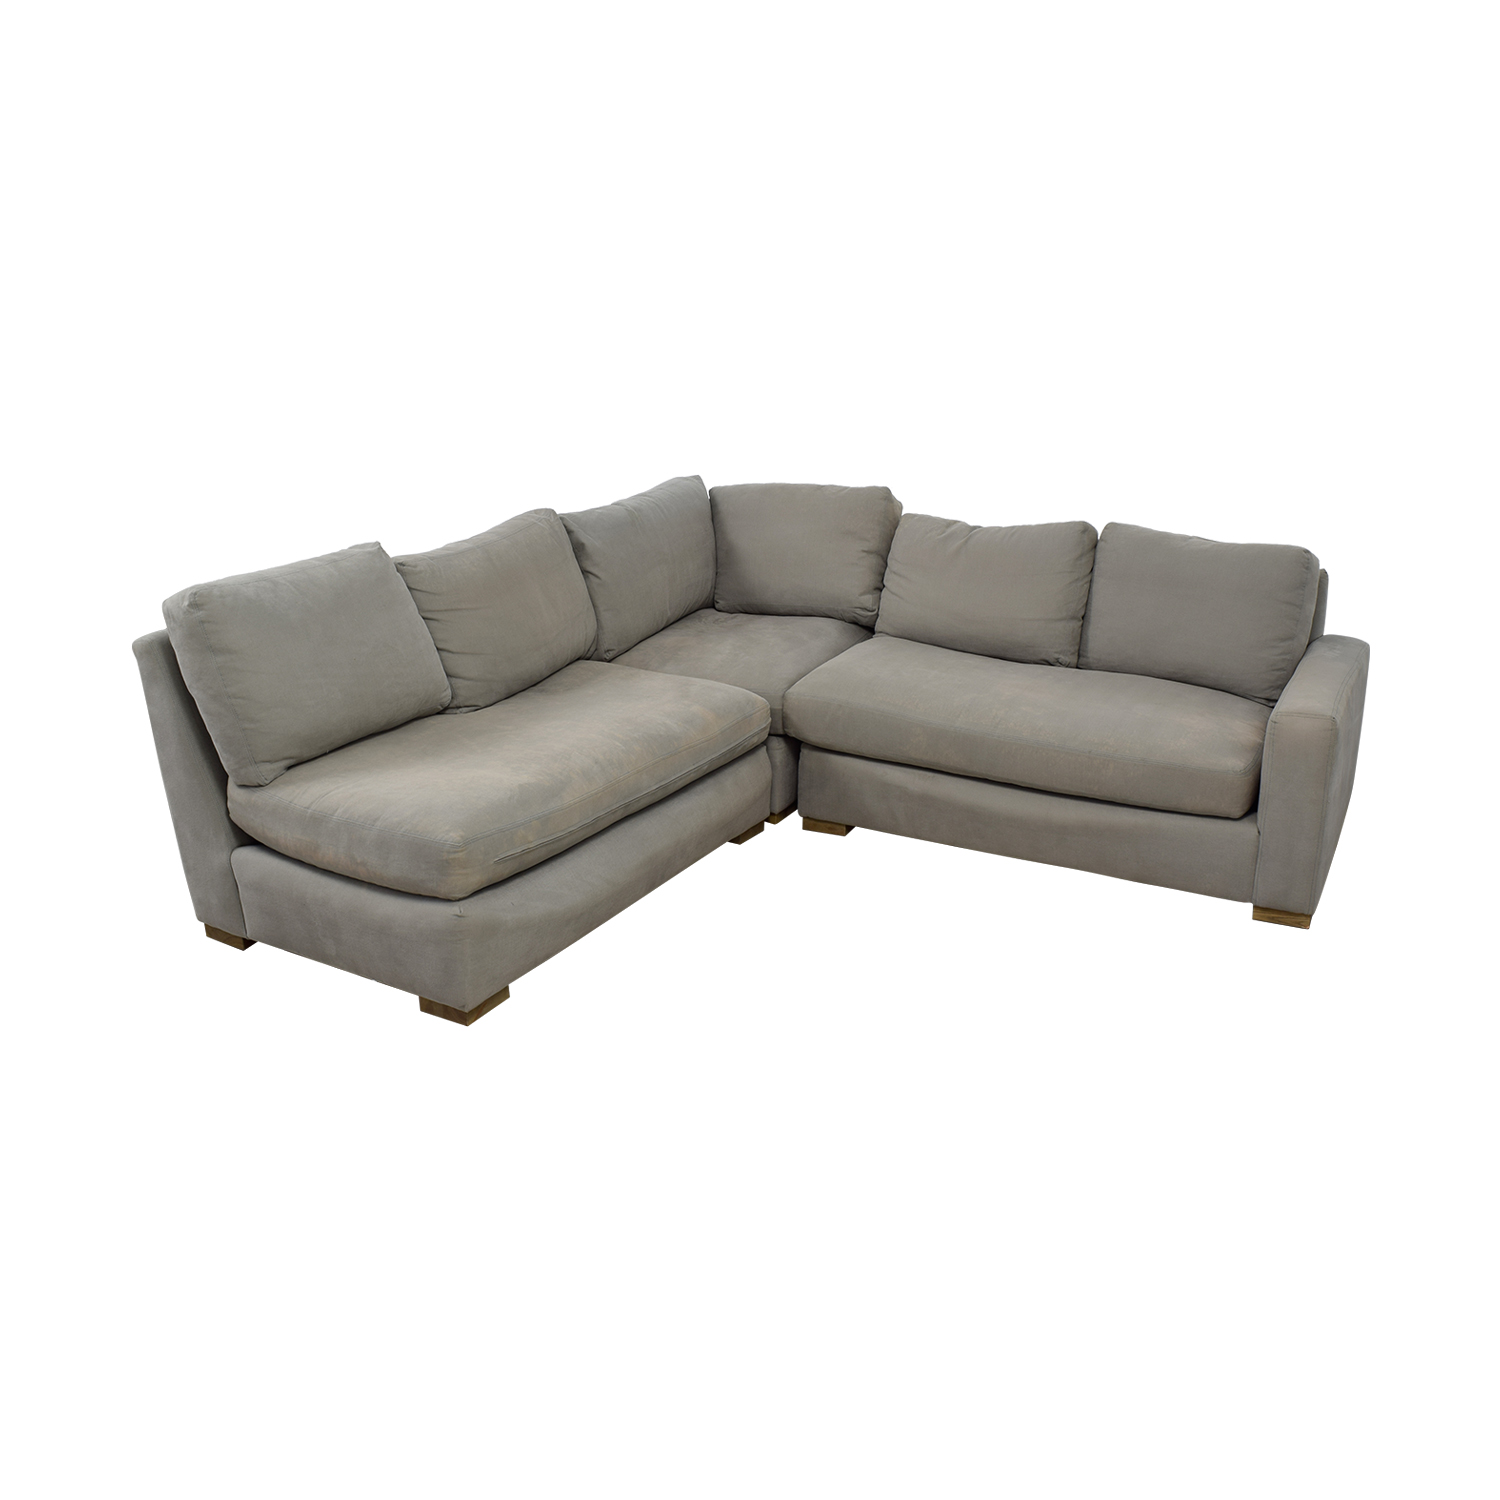 belgian classic arm hardware roll of restoration luxus u sofa sectional